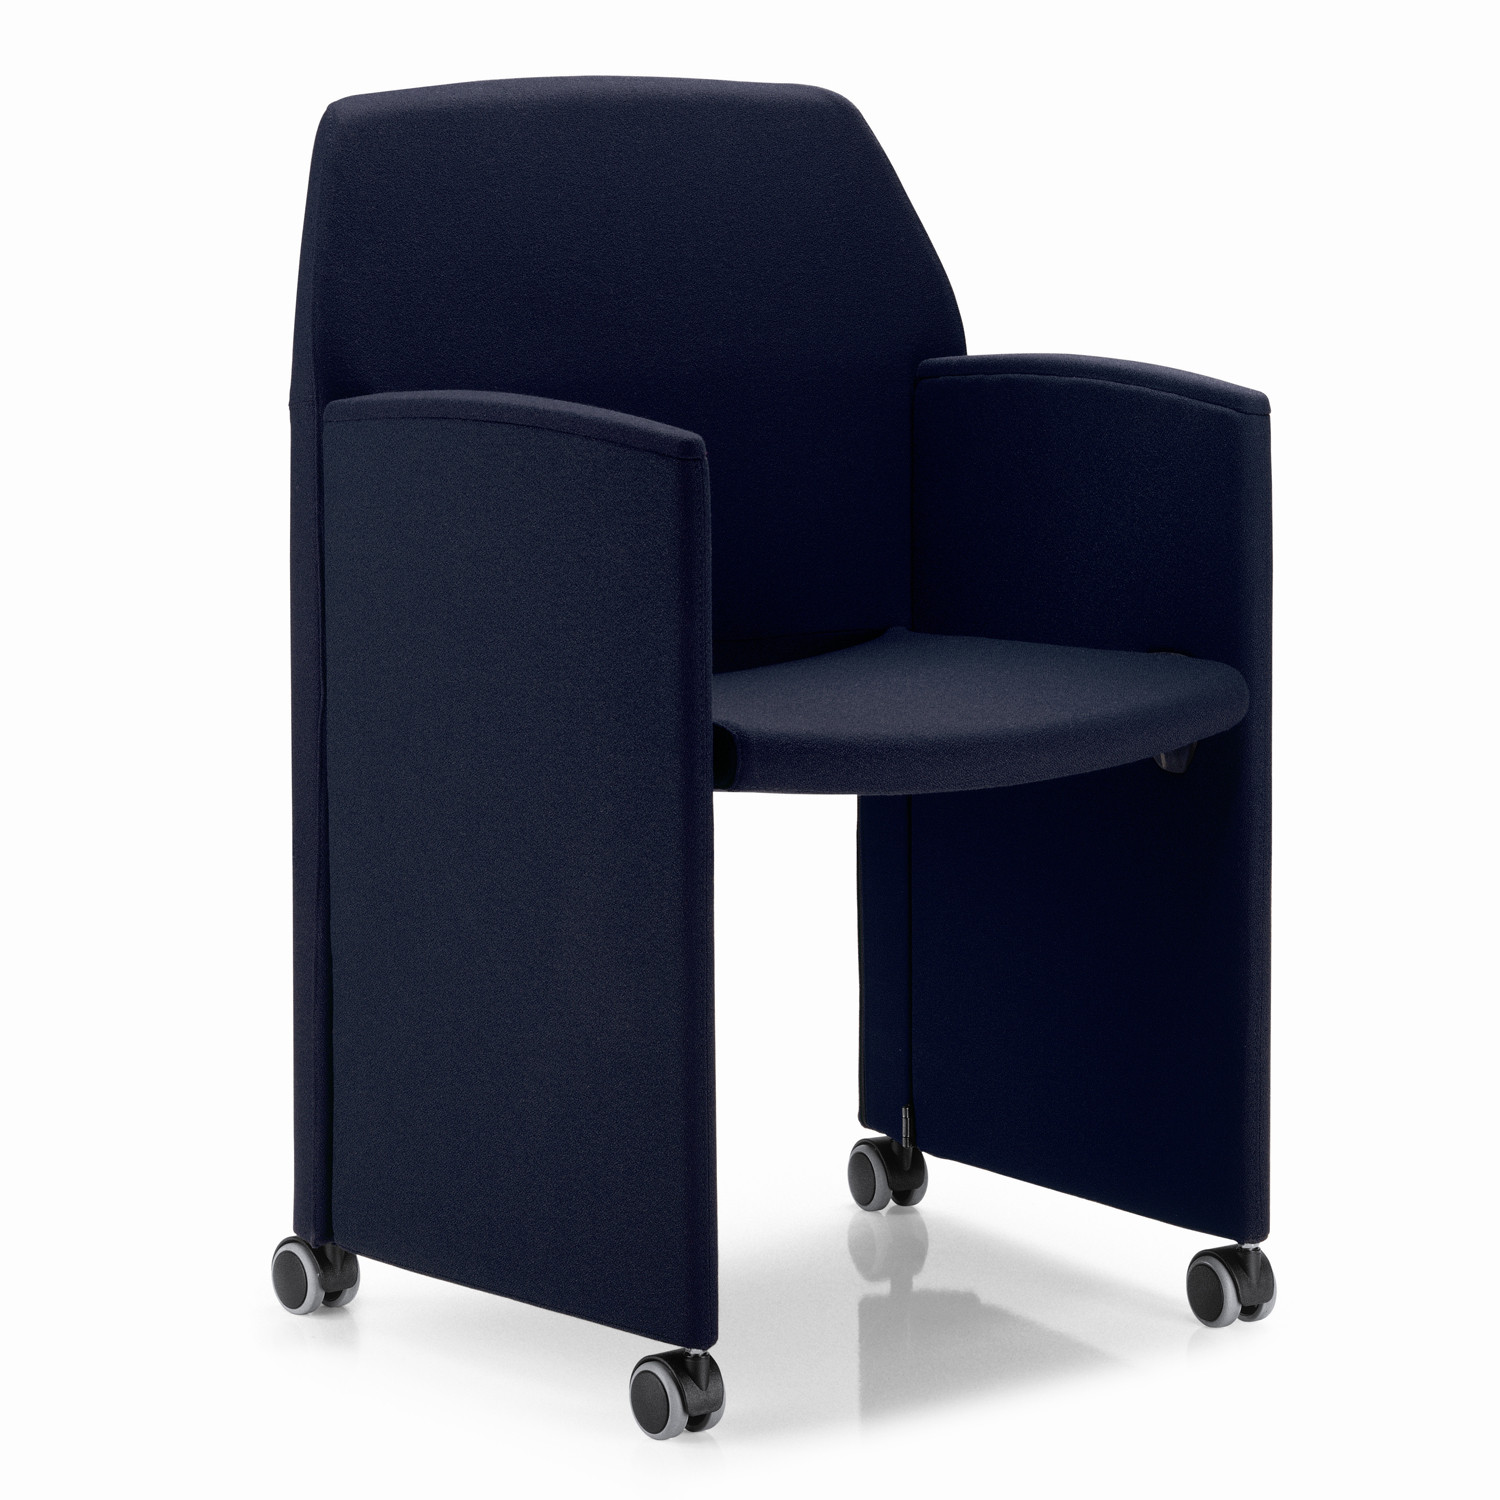 Papillon Chair with castors